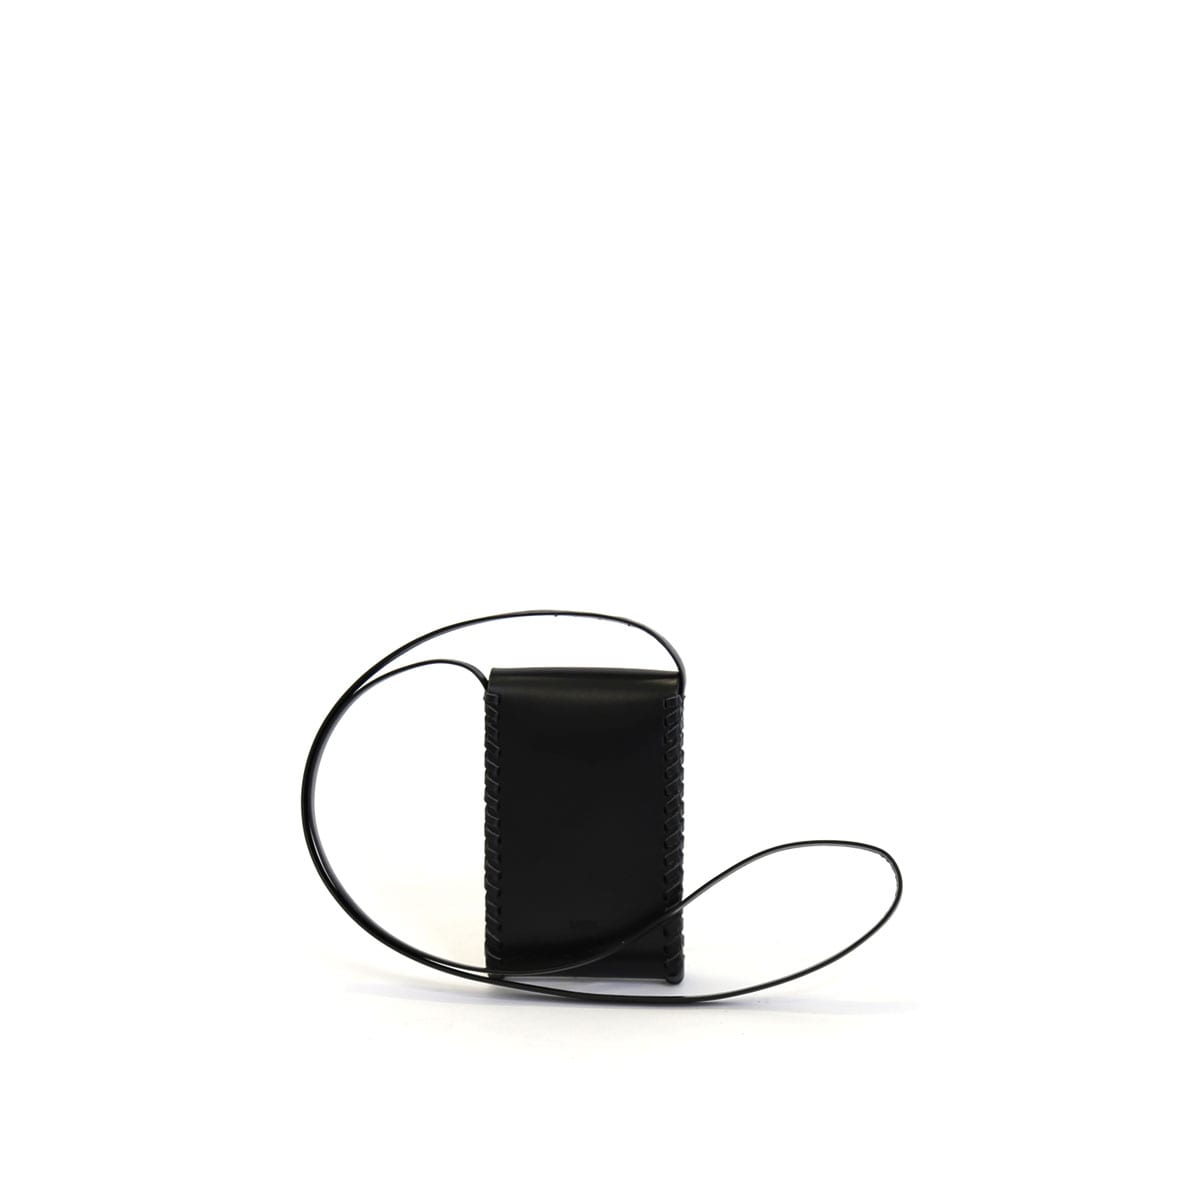 LUMI Kimmo Neck Phone Case, in black, is created using natural vegetable tanned cow leather. The color will naturally change over time.